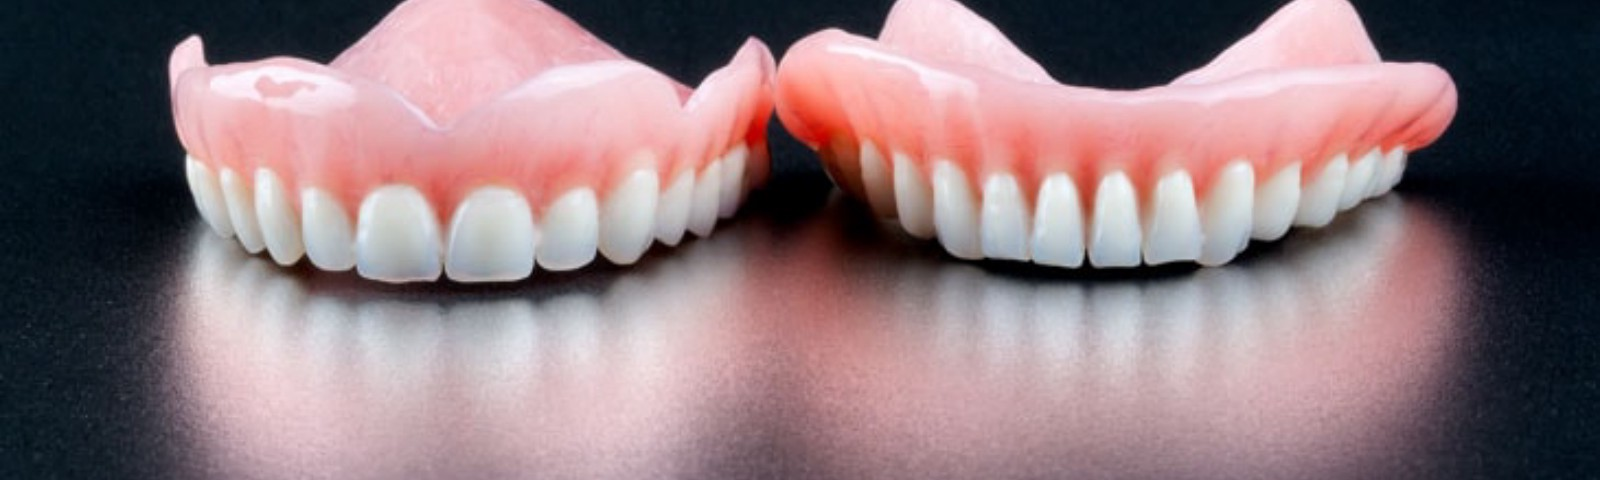 What is an Immediate Denture? \u2013 Dr Muzzafar Zaman Dental Advice \u2013 Medium